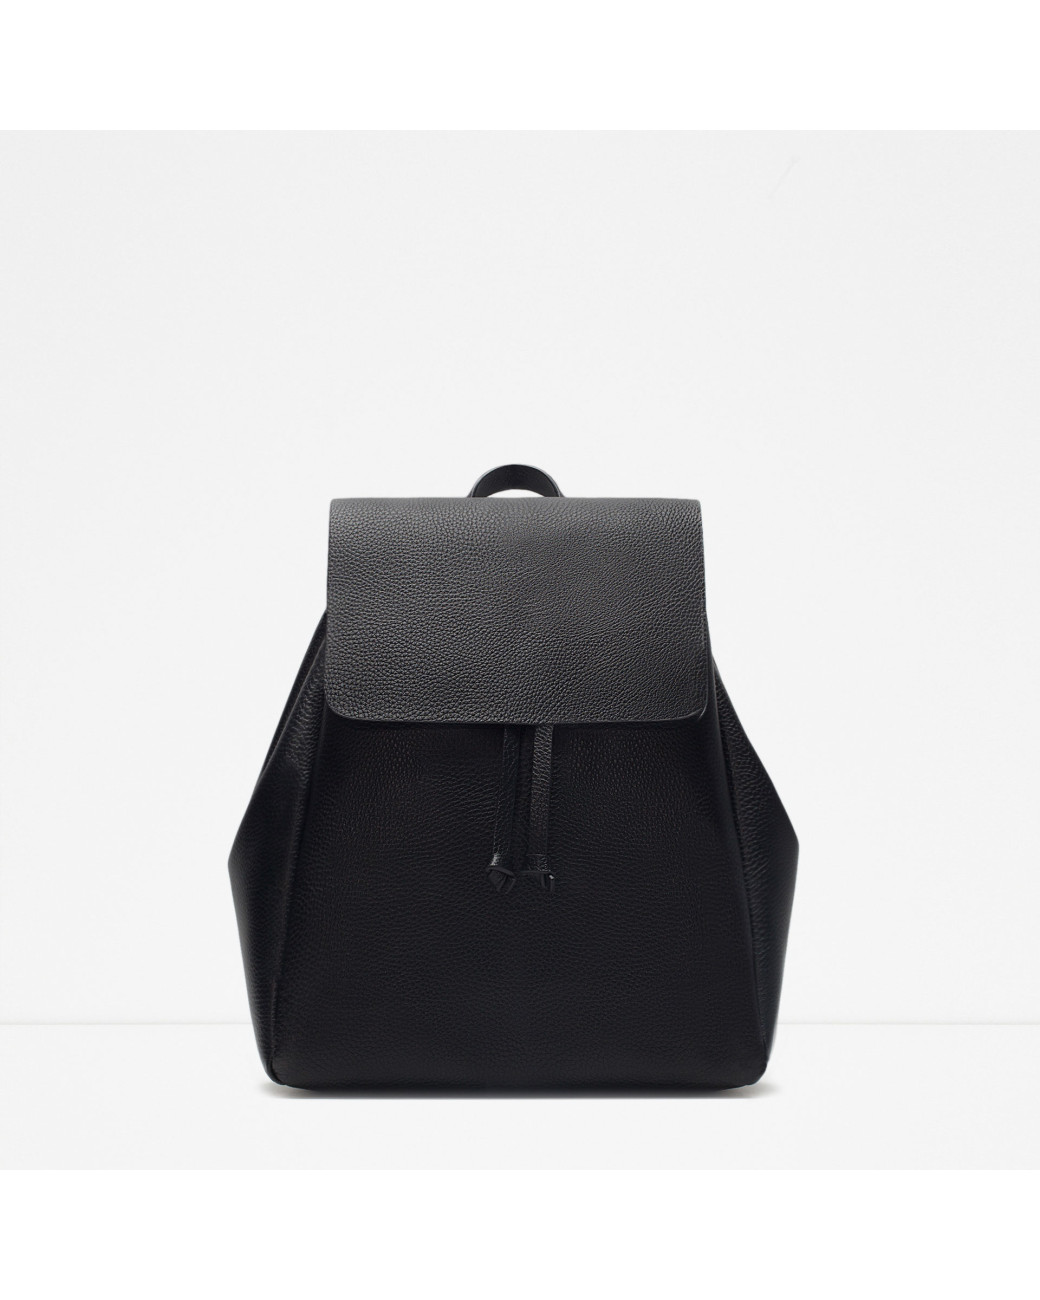 zara-black-backpack-with-foldover-flap-product-4-118156327-normal.jpeg